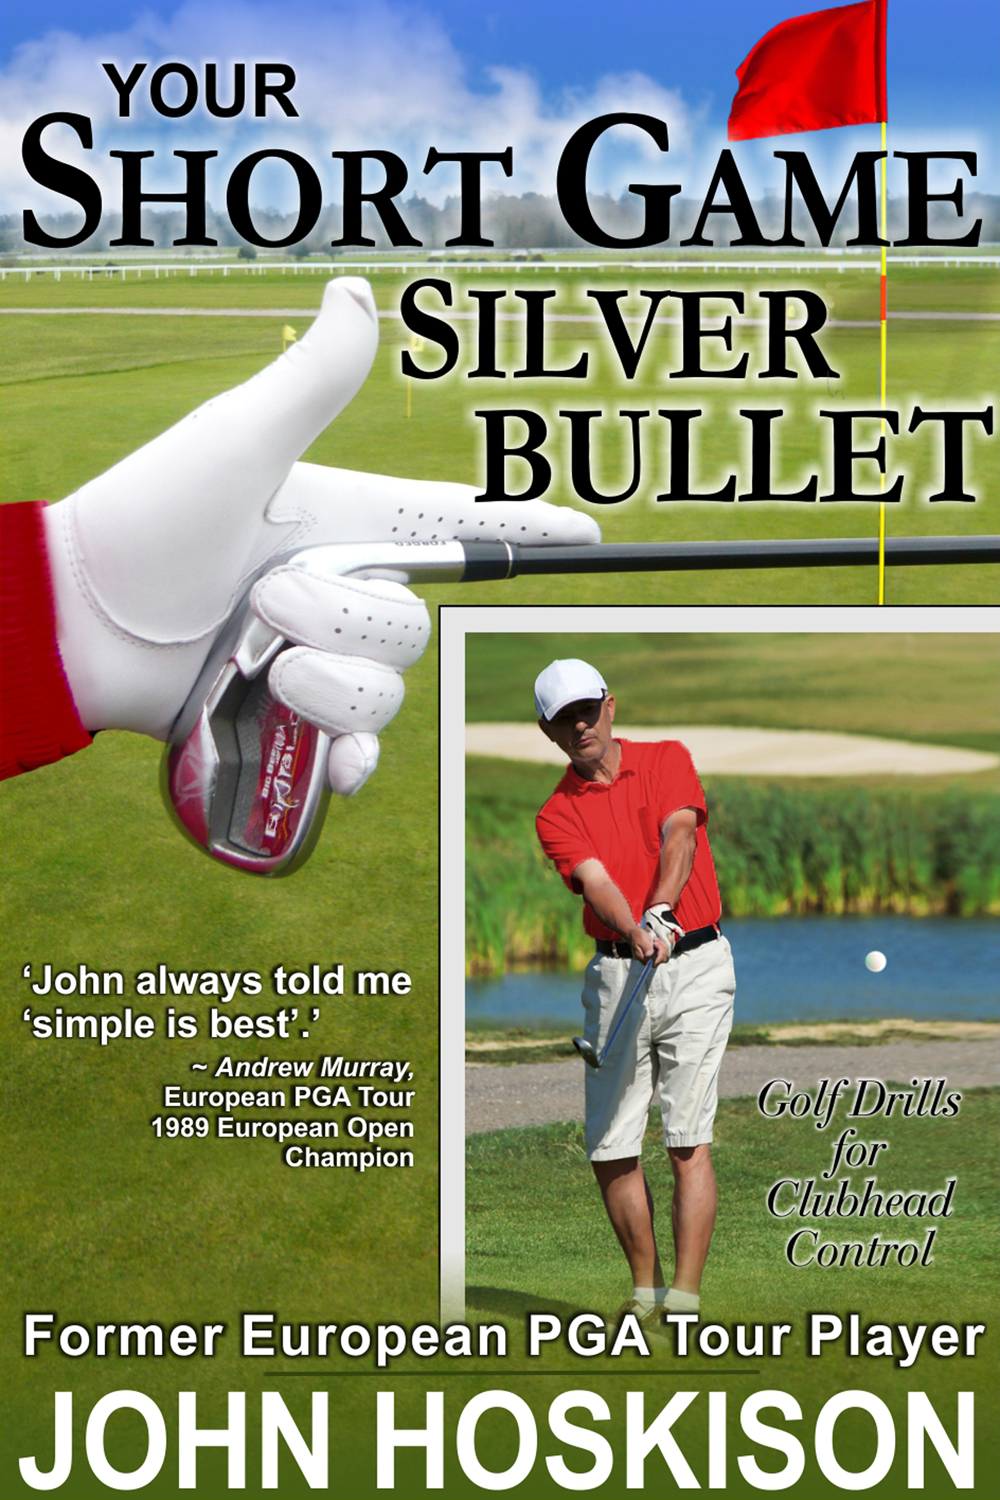 http://www.amazon.co.uk/Your-Short-Game-Silver-Bullet-ebook/dp/B00CAFQ7SC/ref=sr_1_7?ie=UTF8&qid=1418114457&sr=8-7&keywords=hoskison